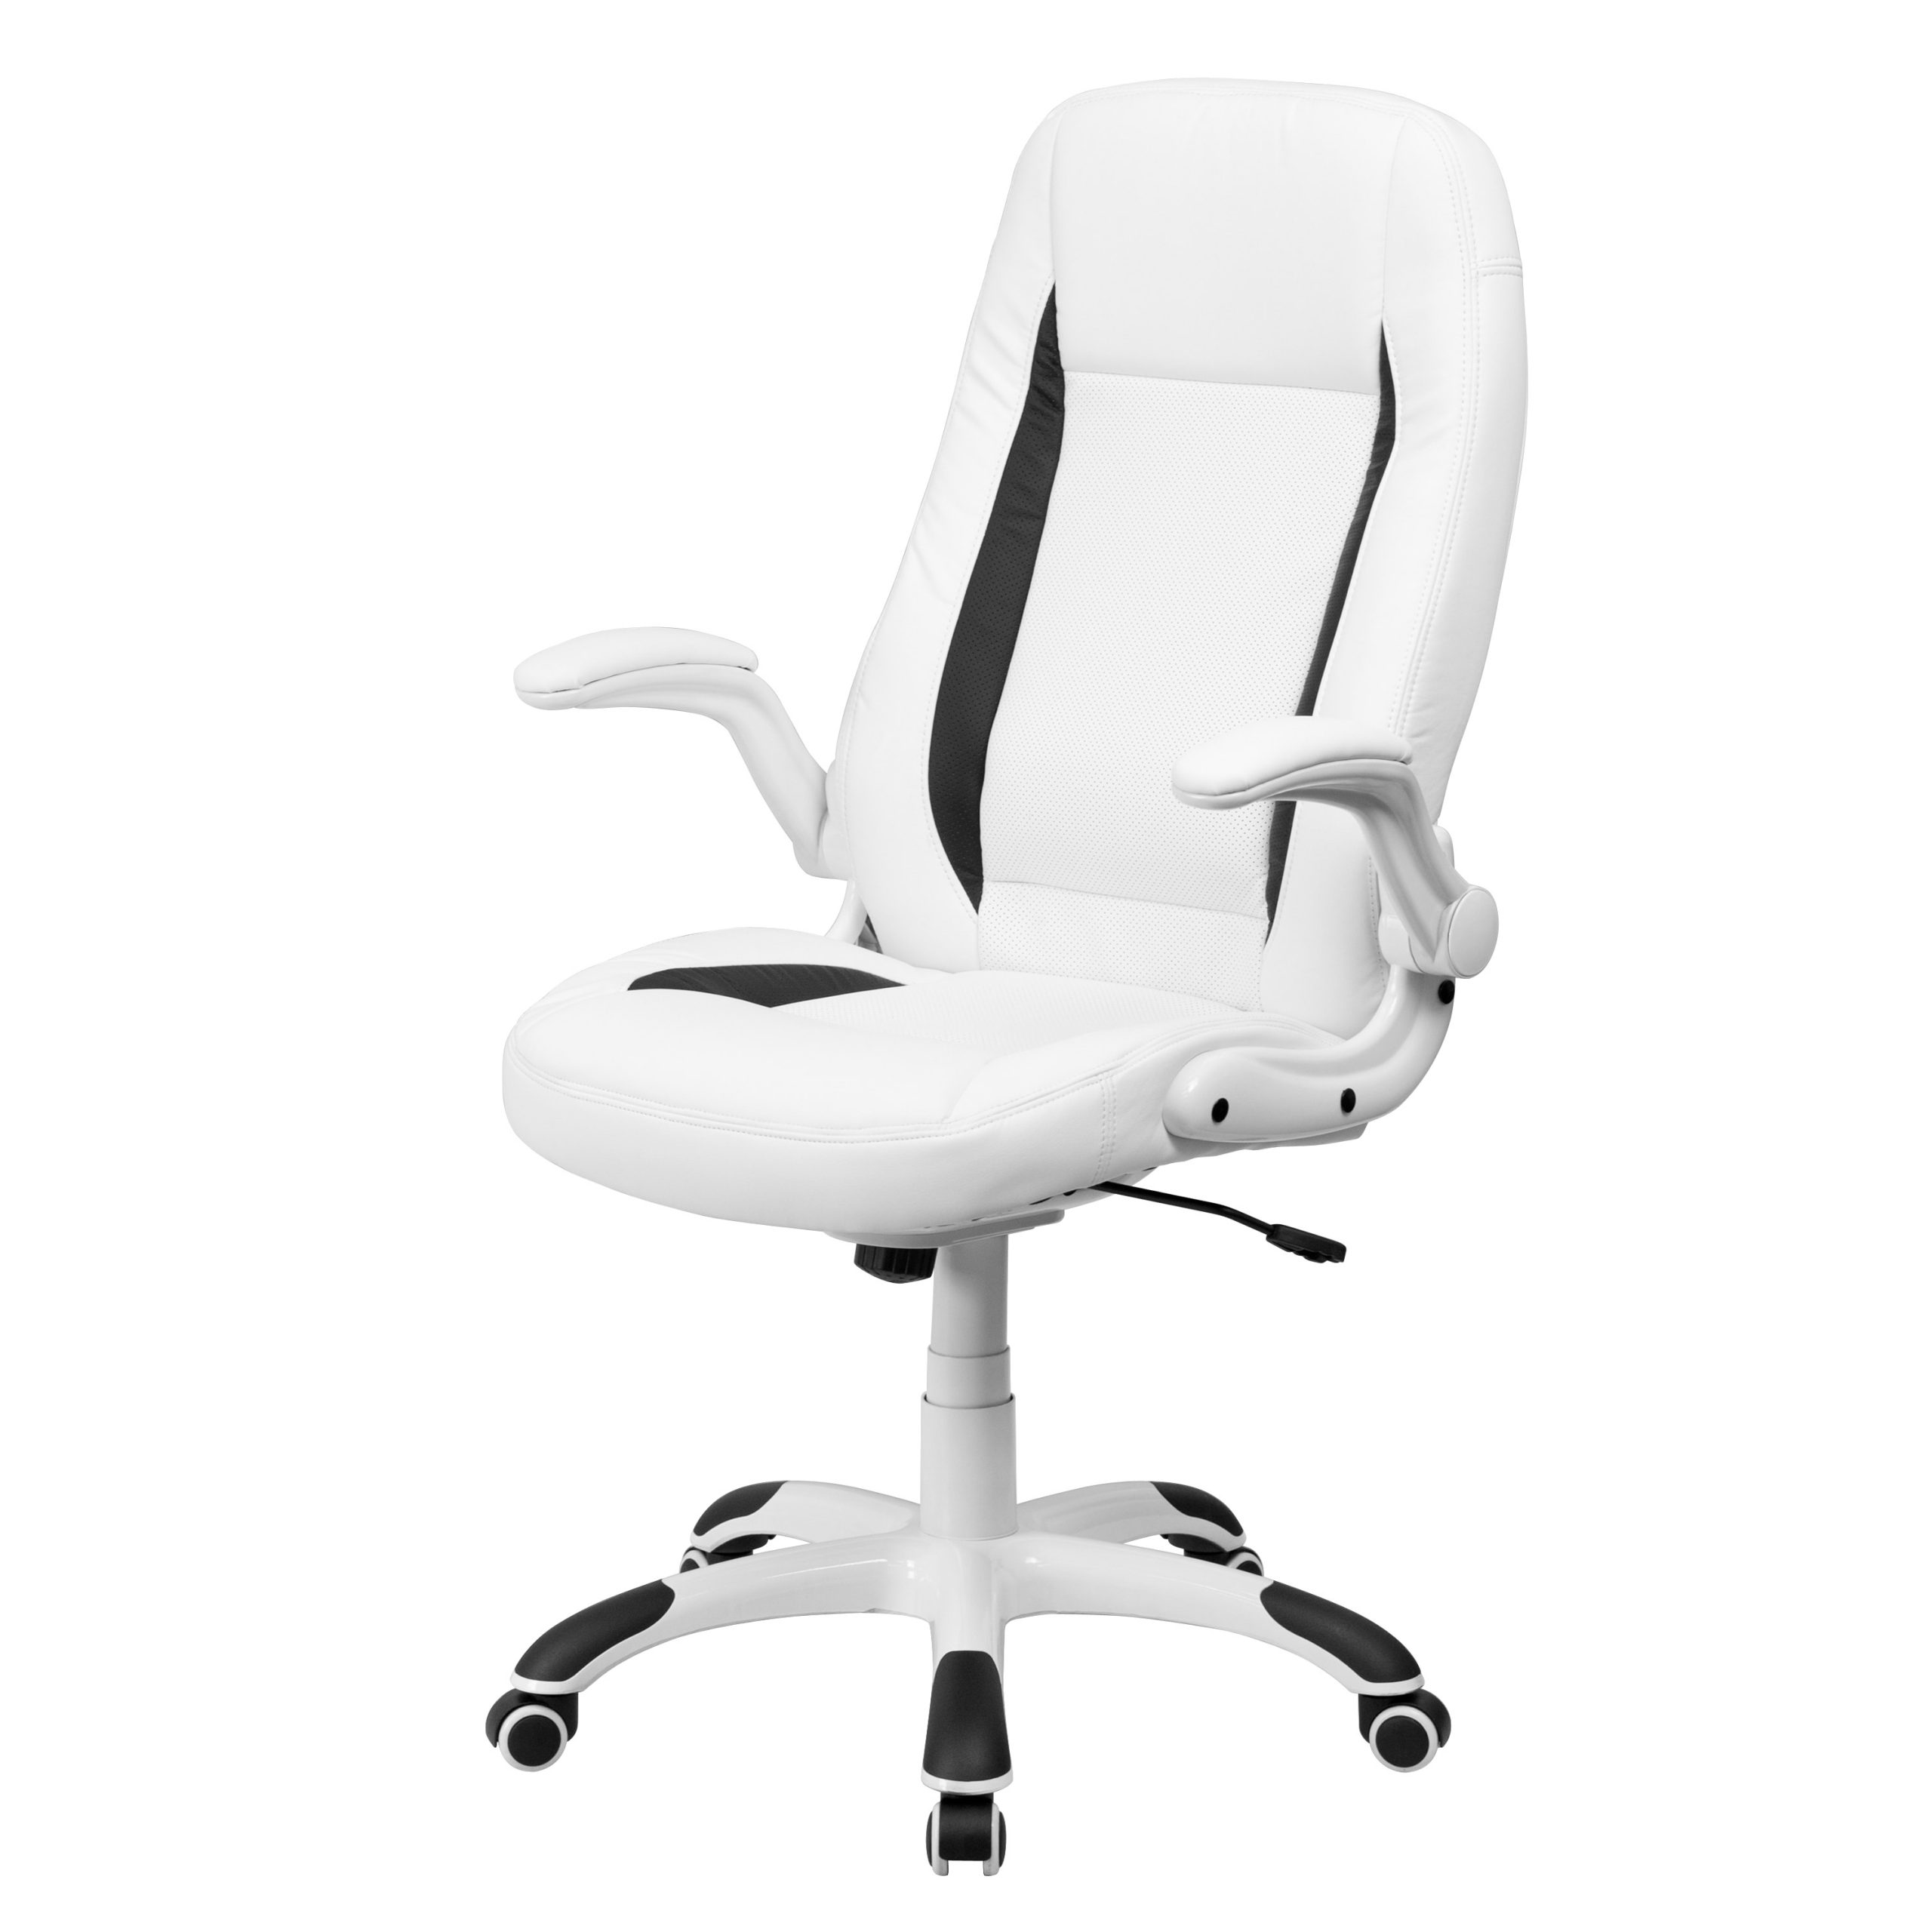 Executive Office Chairs With Flip Up Arms